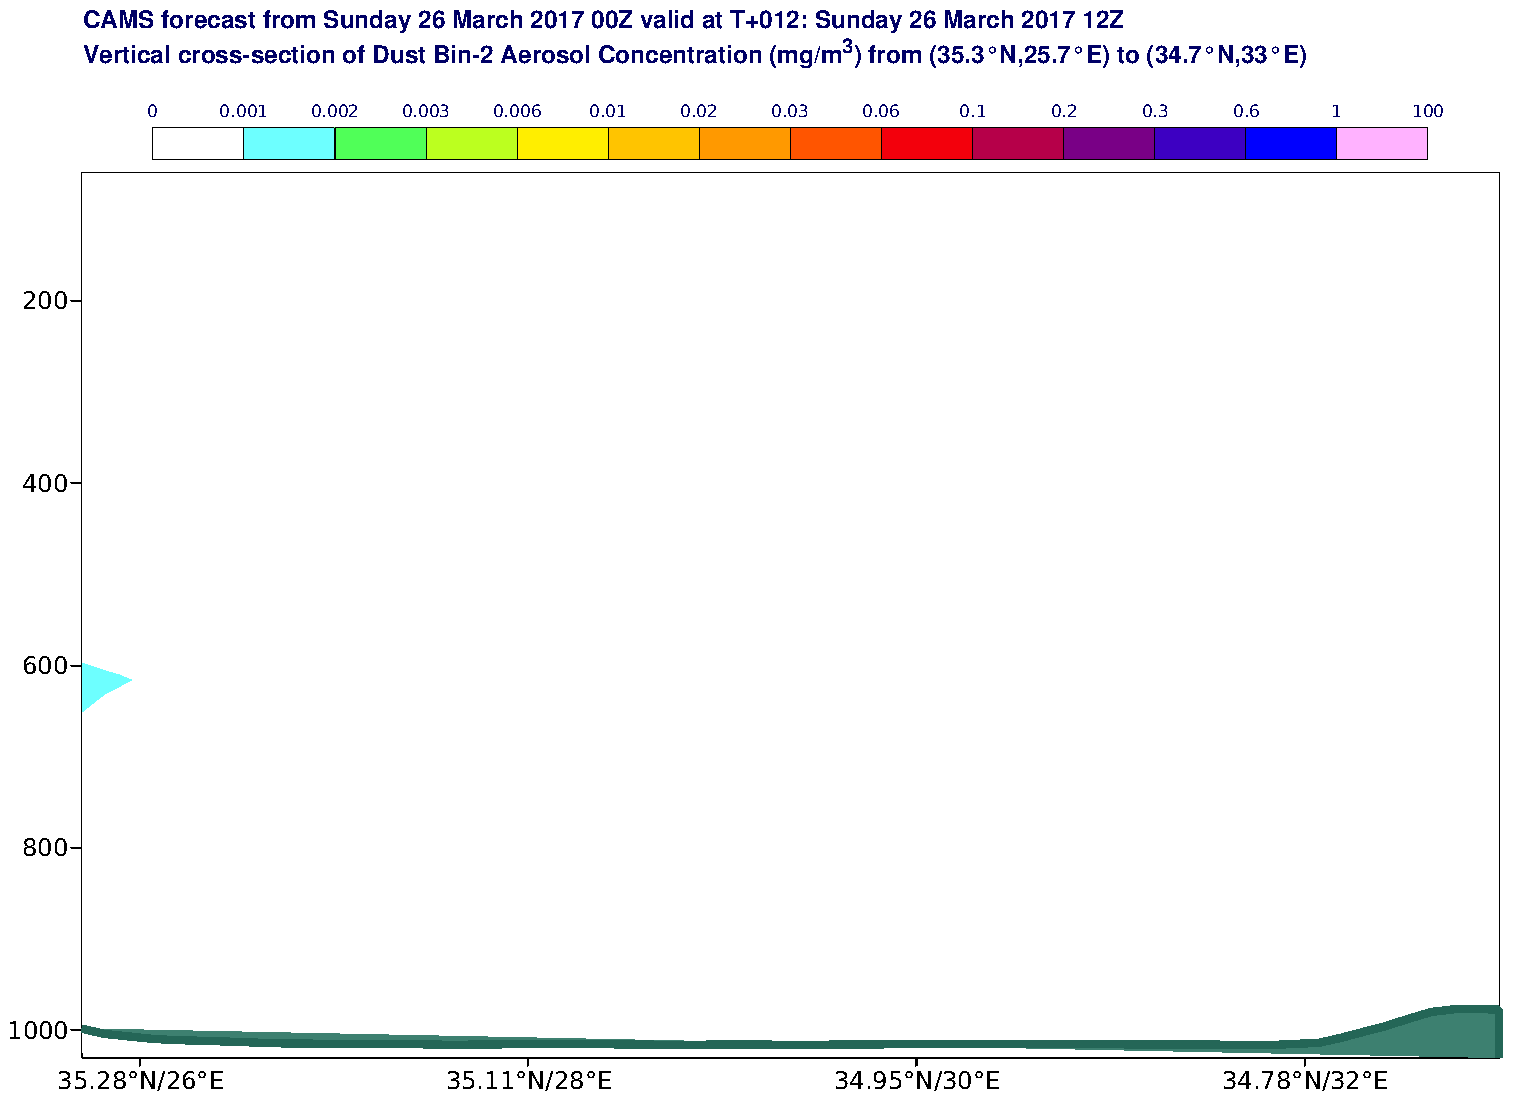 Vertical cross-section of Dust Bin-2 Aerosol Concentration (mg/m3) valid at T12 - 2017-03-26 12:00